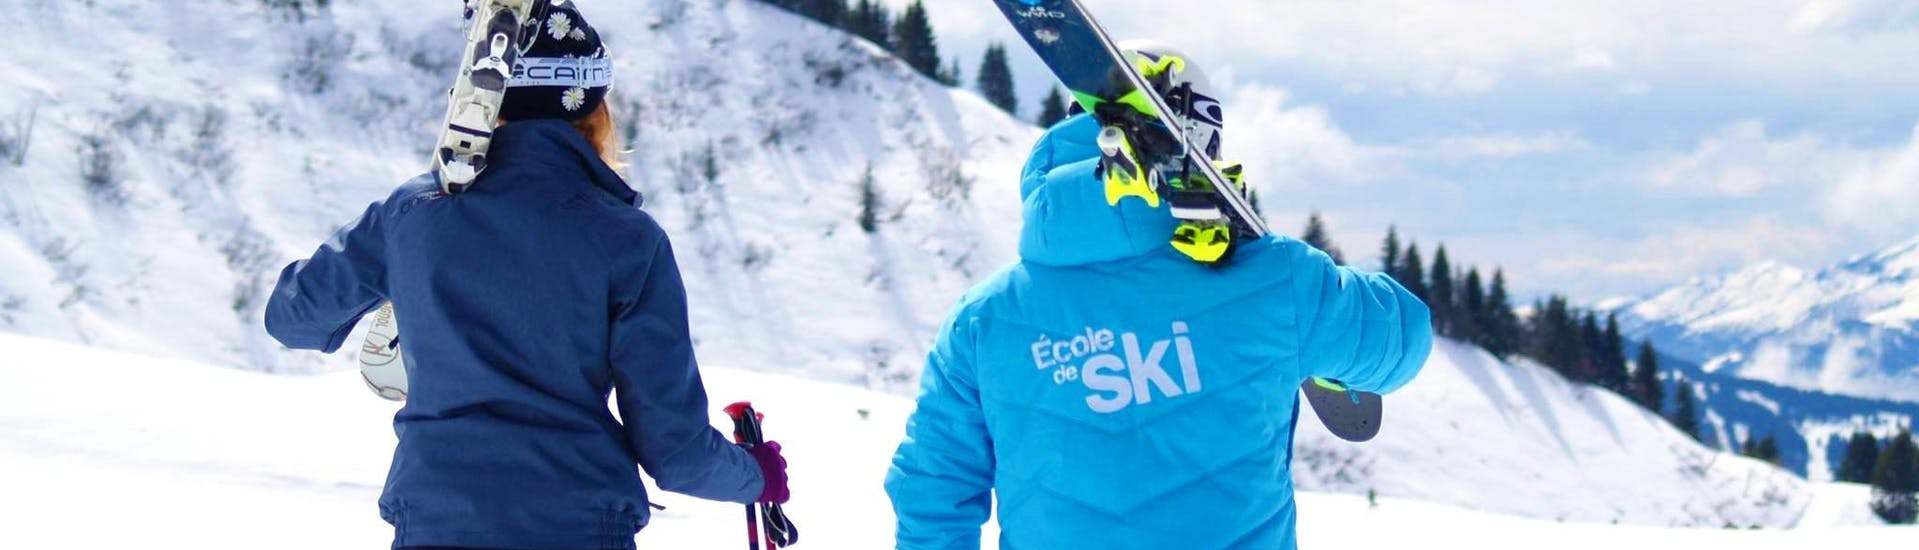 adult-ski-lessons-first-timers-holidays-easy2ride-avoriaz-hero